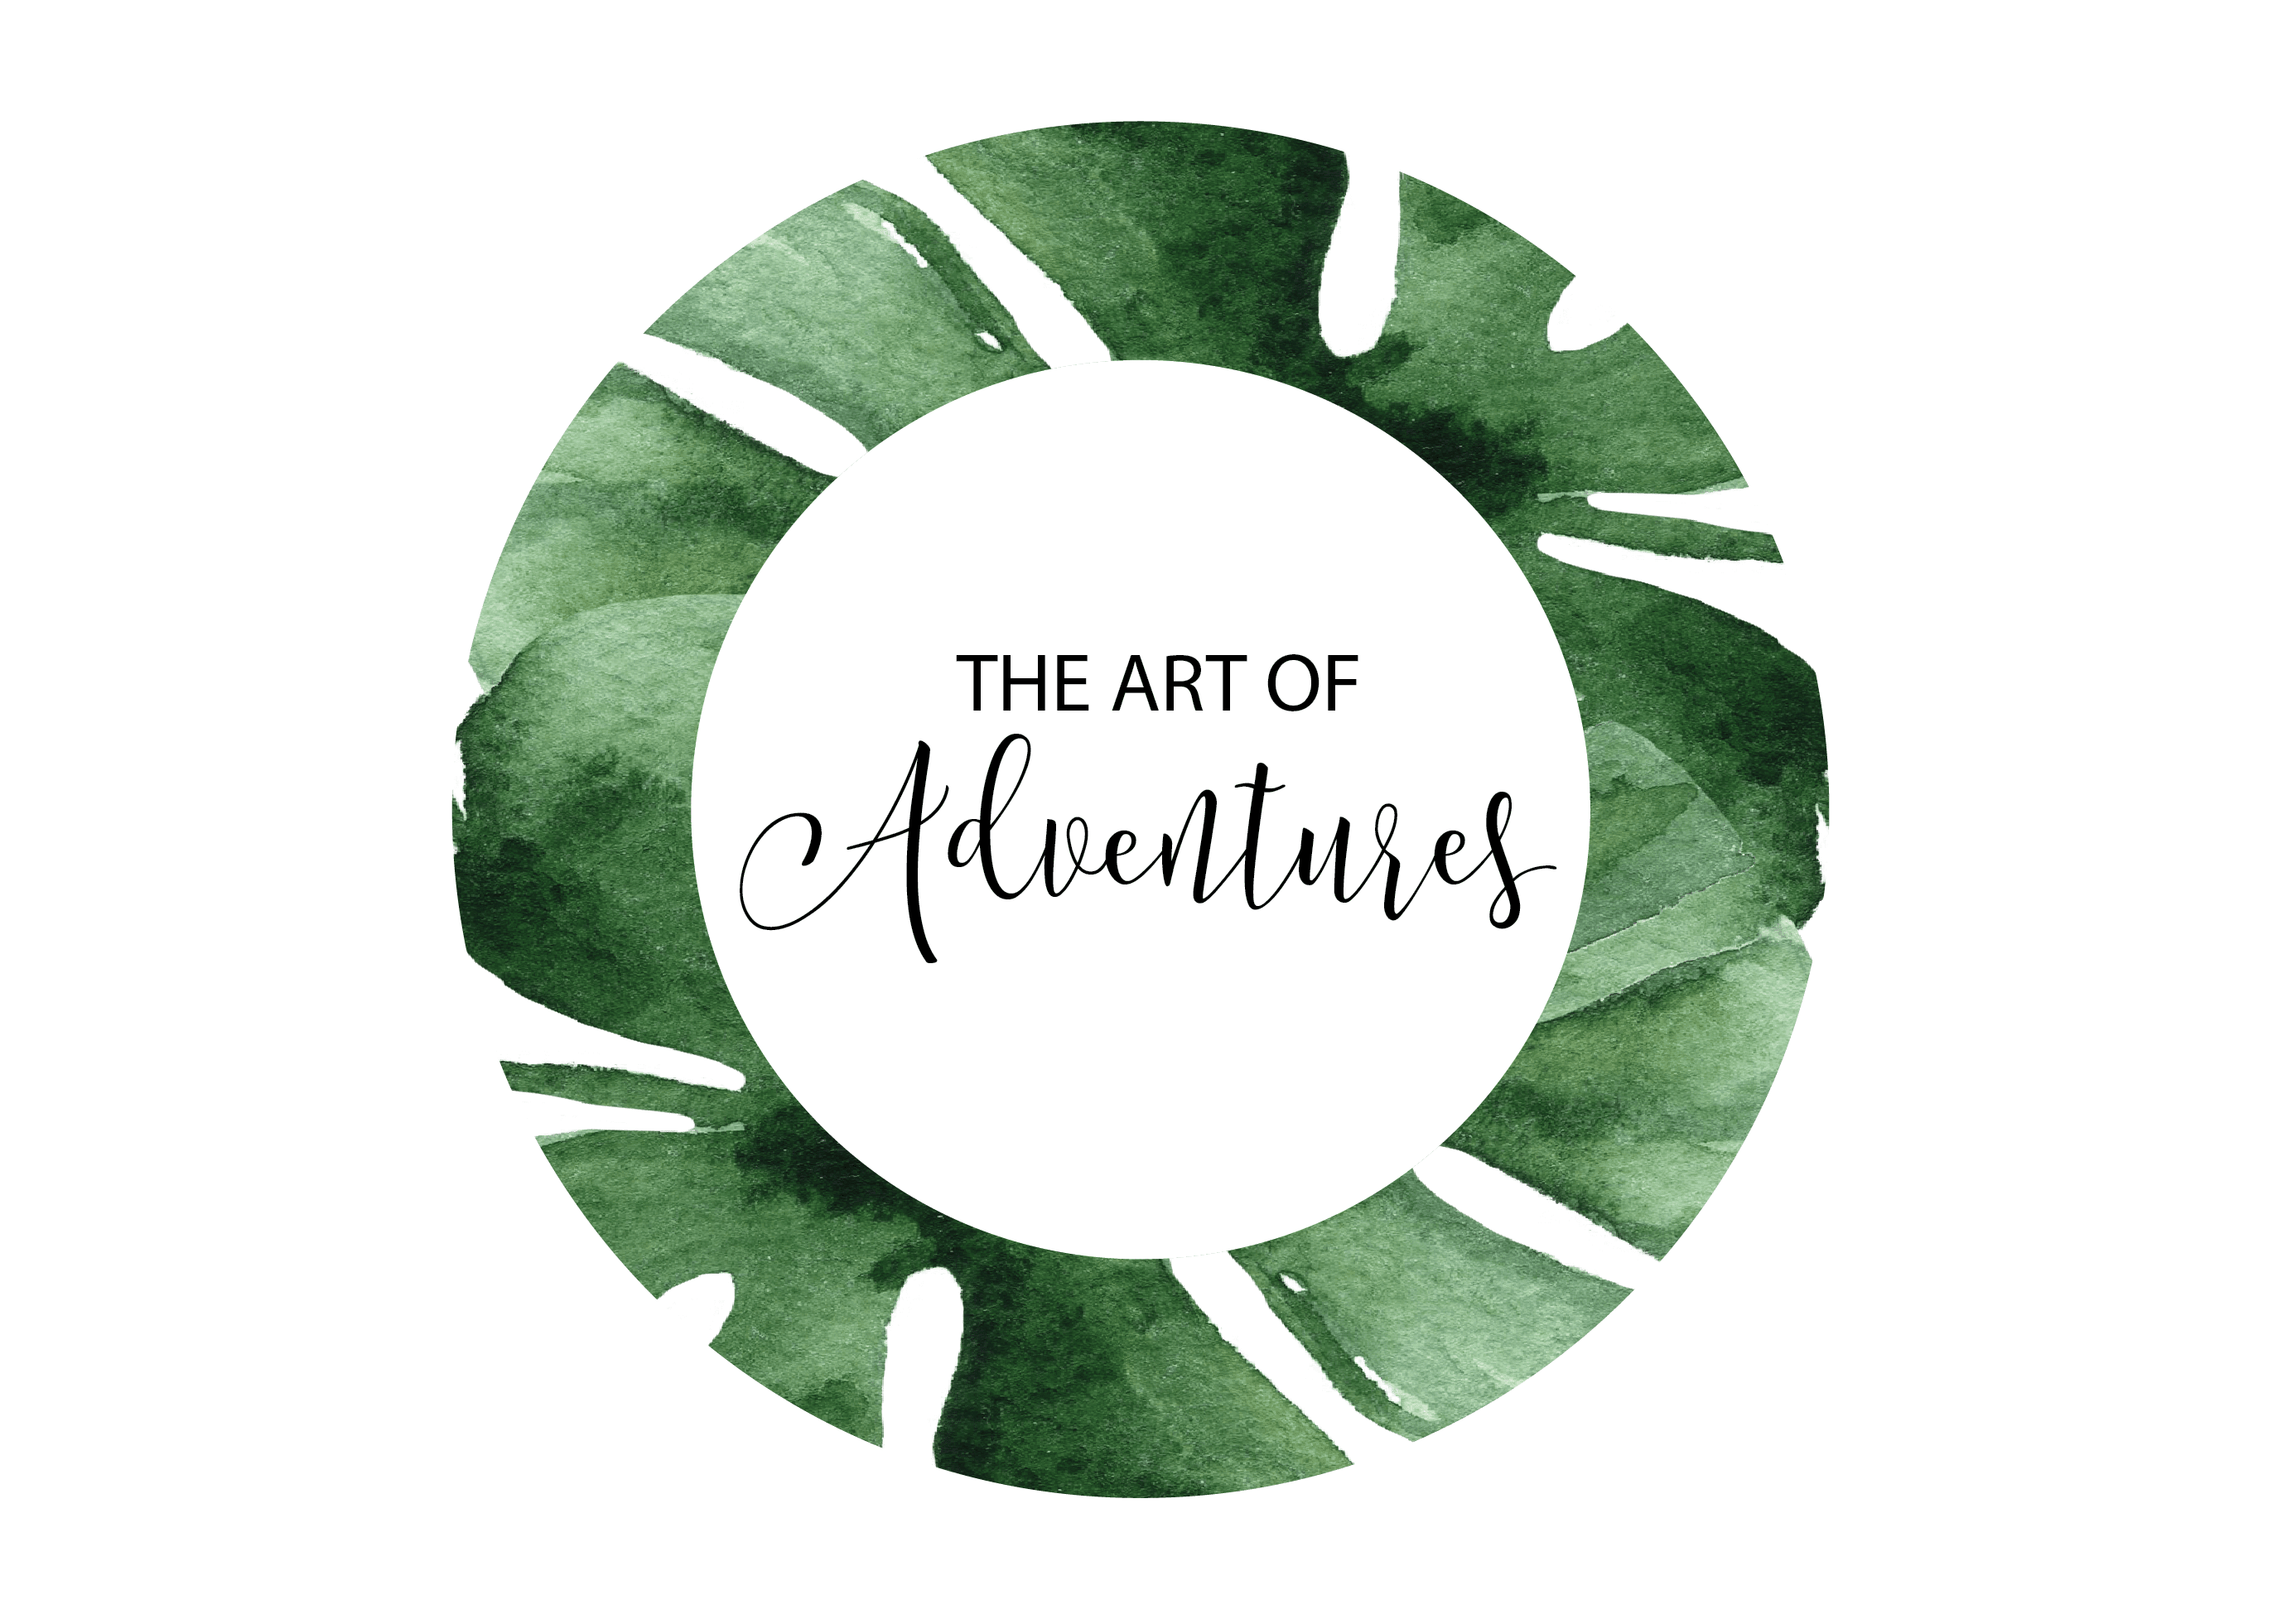 The Art of Adventures